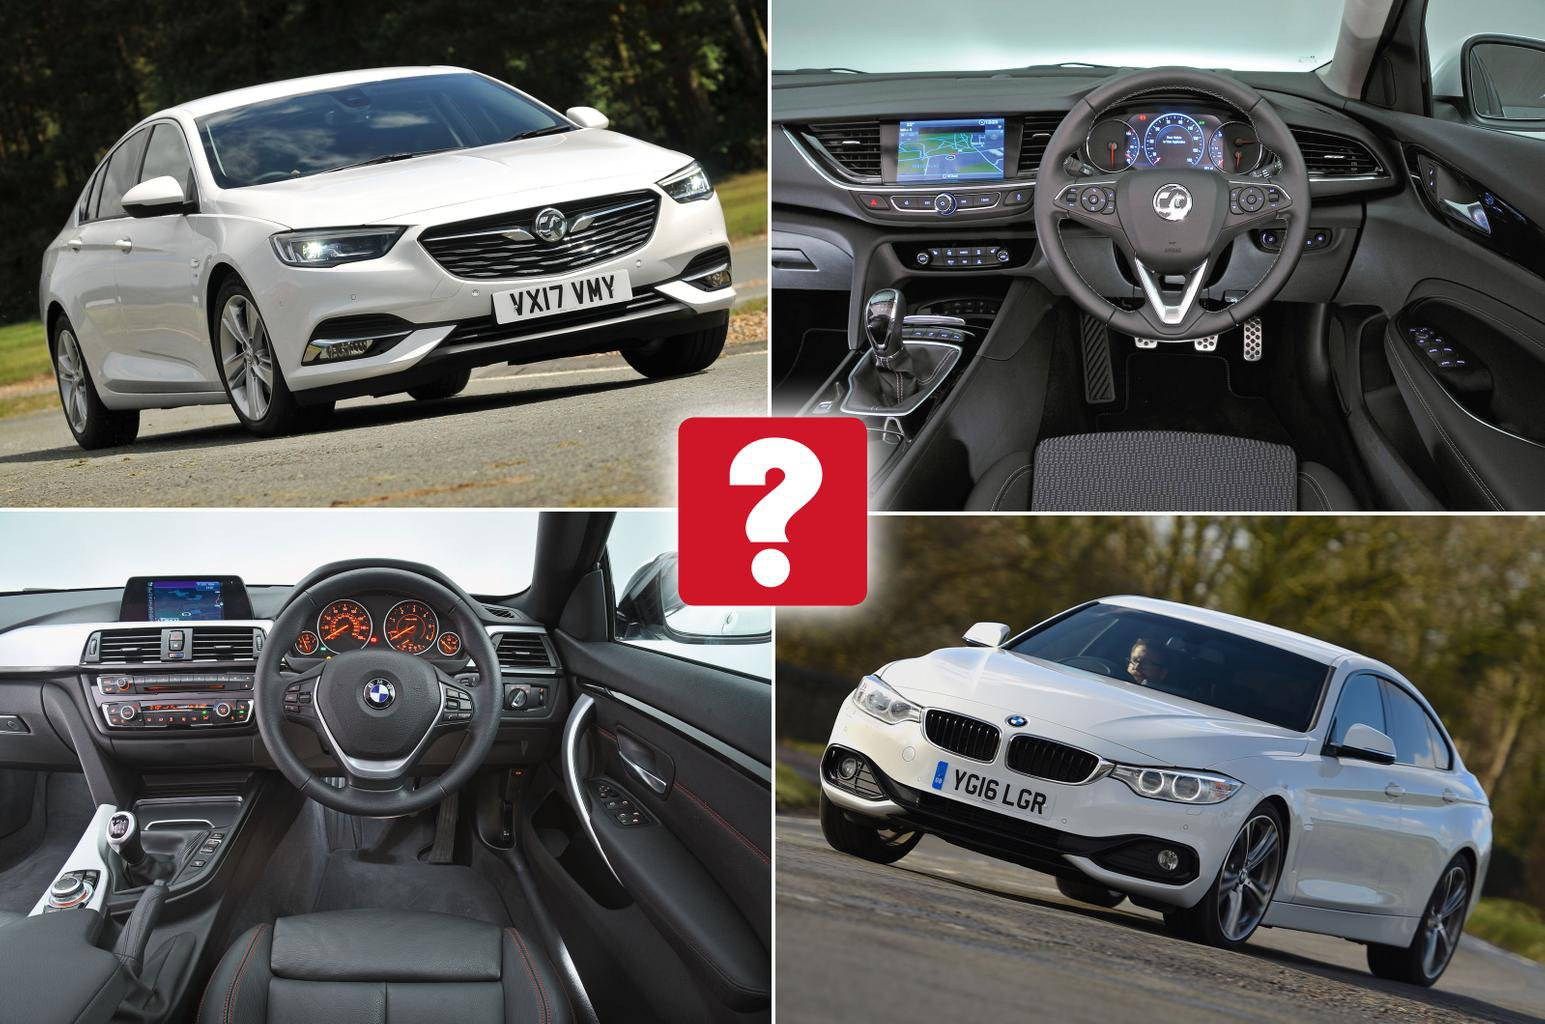 New Vauxhall Insignia Grand Sport vs used BMW 4 Series Gran Coupe: which is best?